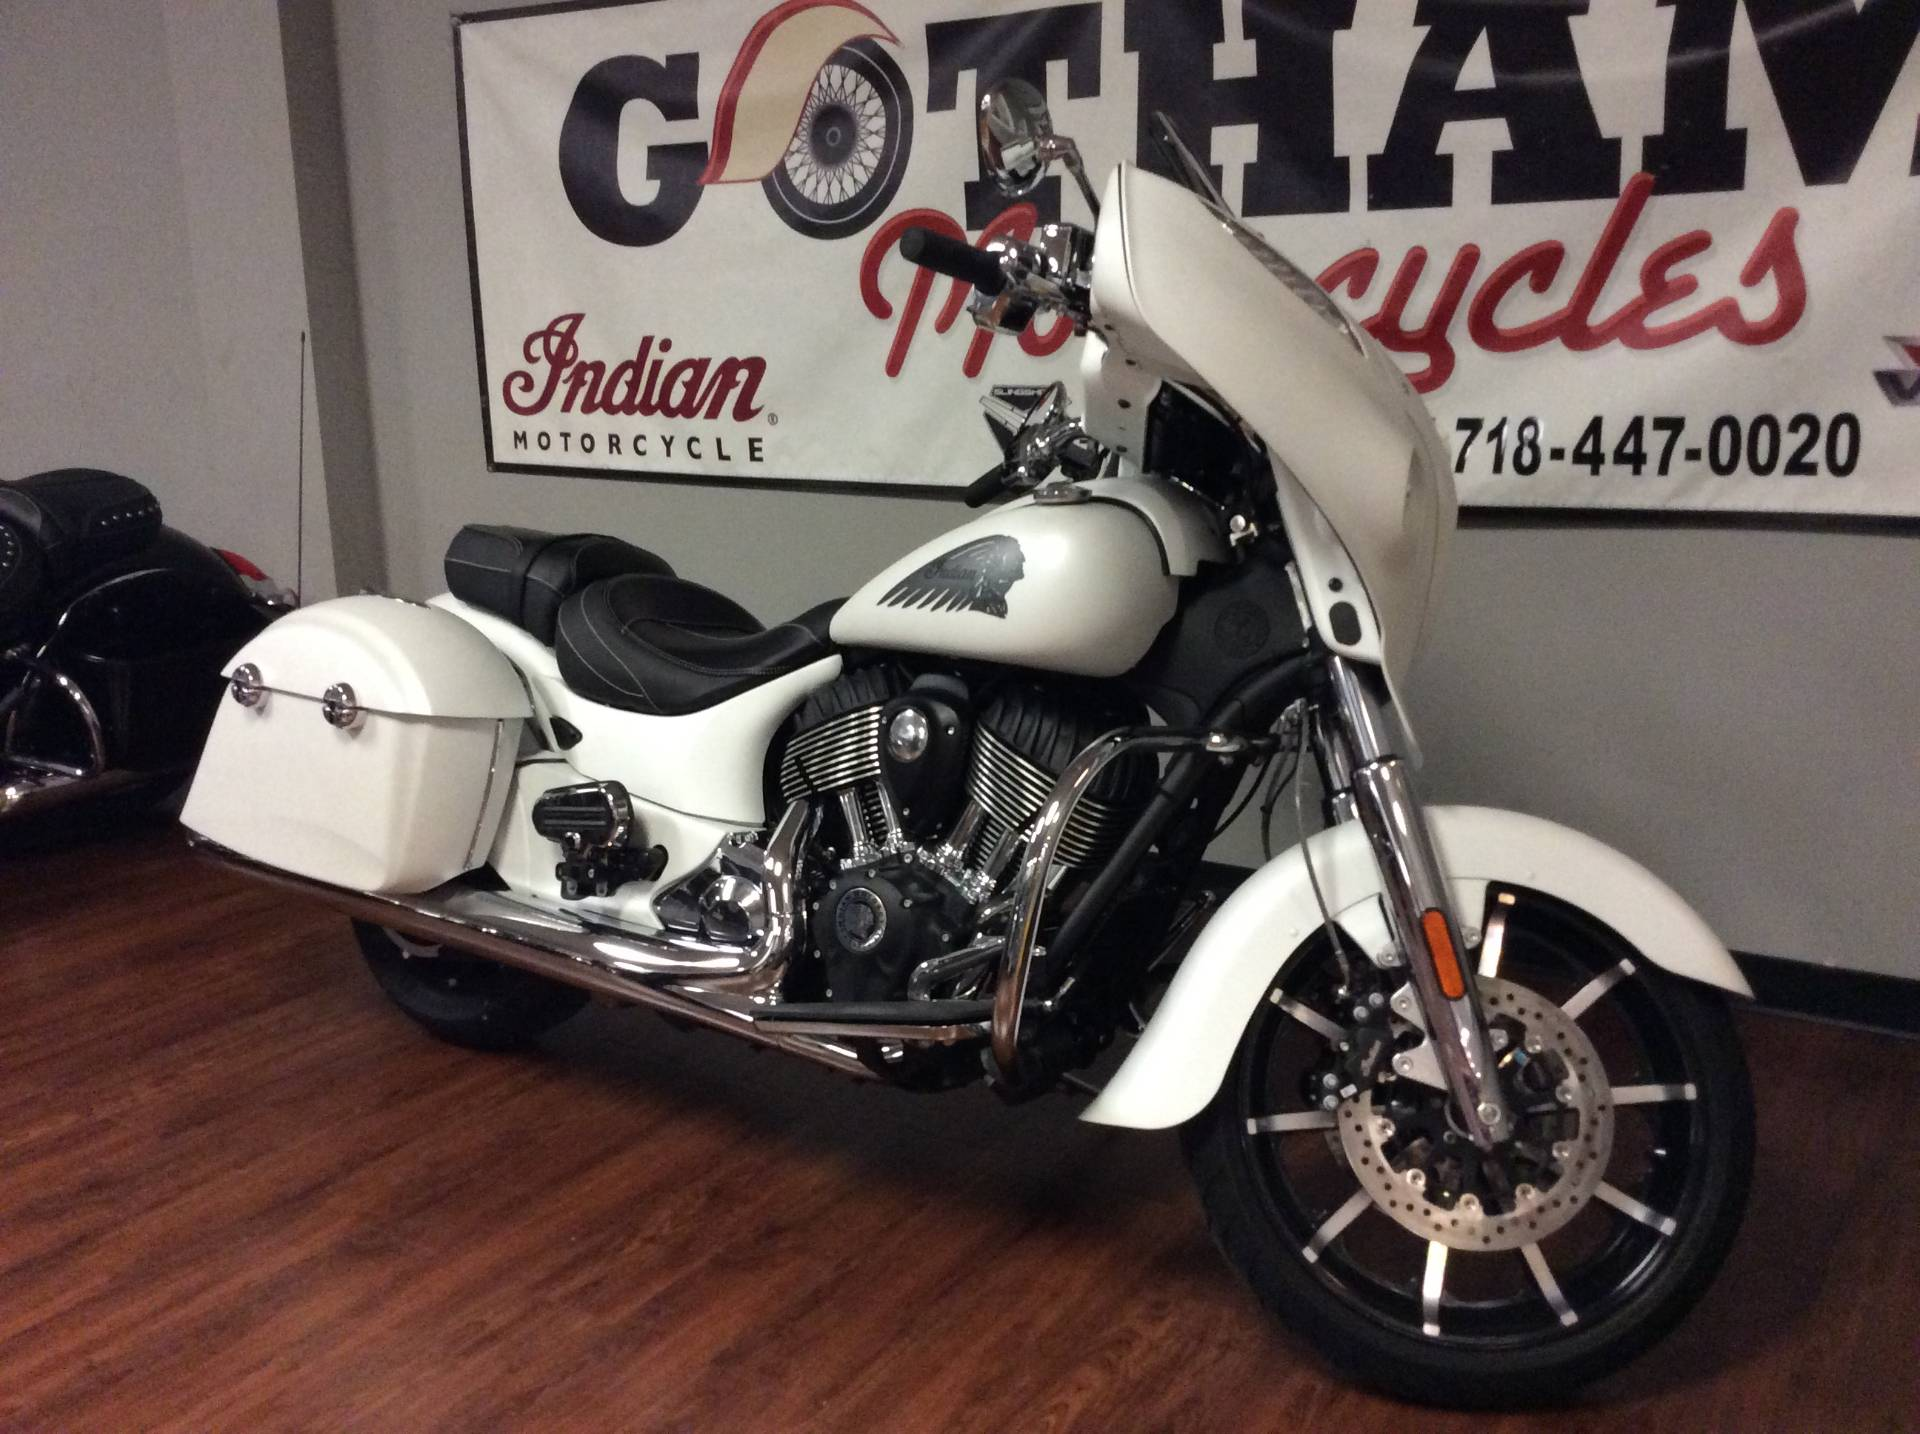 2018 Indian Chieftain Limited ABS 7